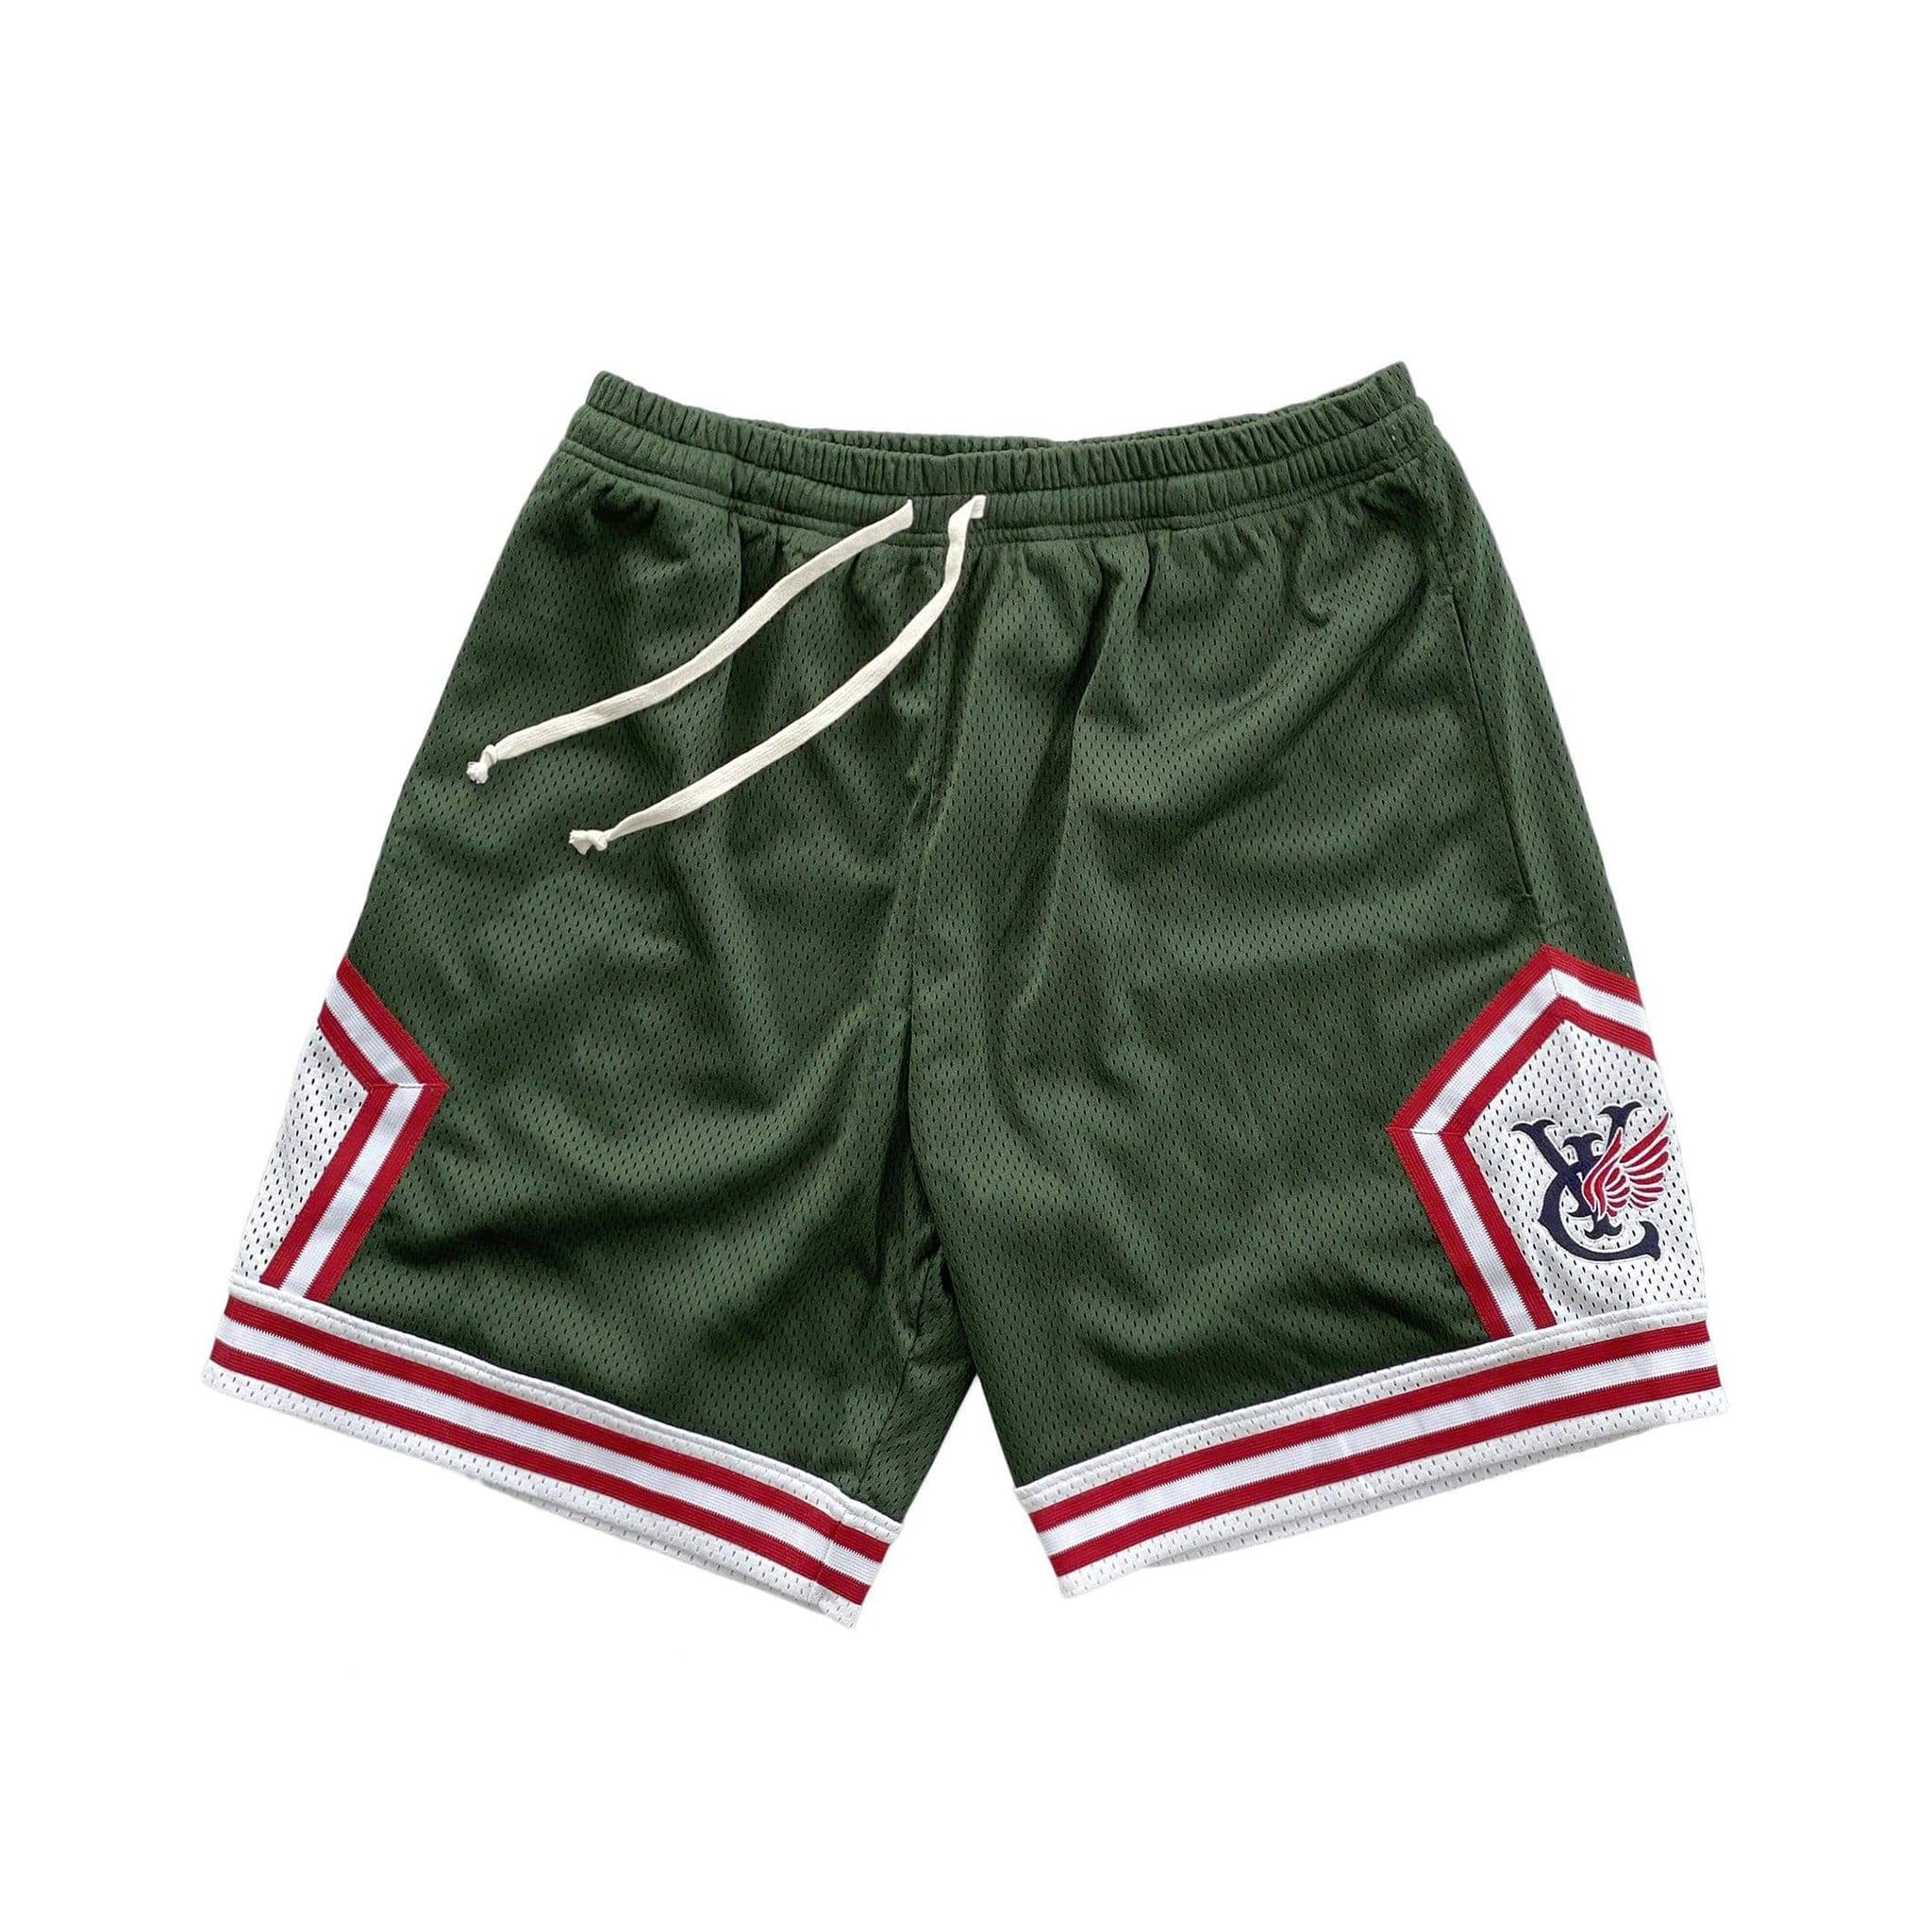 Retro style basketball shorts by New Zealand skate and streetwear clothing label VIC Apparel. American vintage classic sportswear. Full athletic fit.